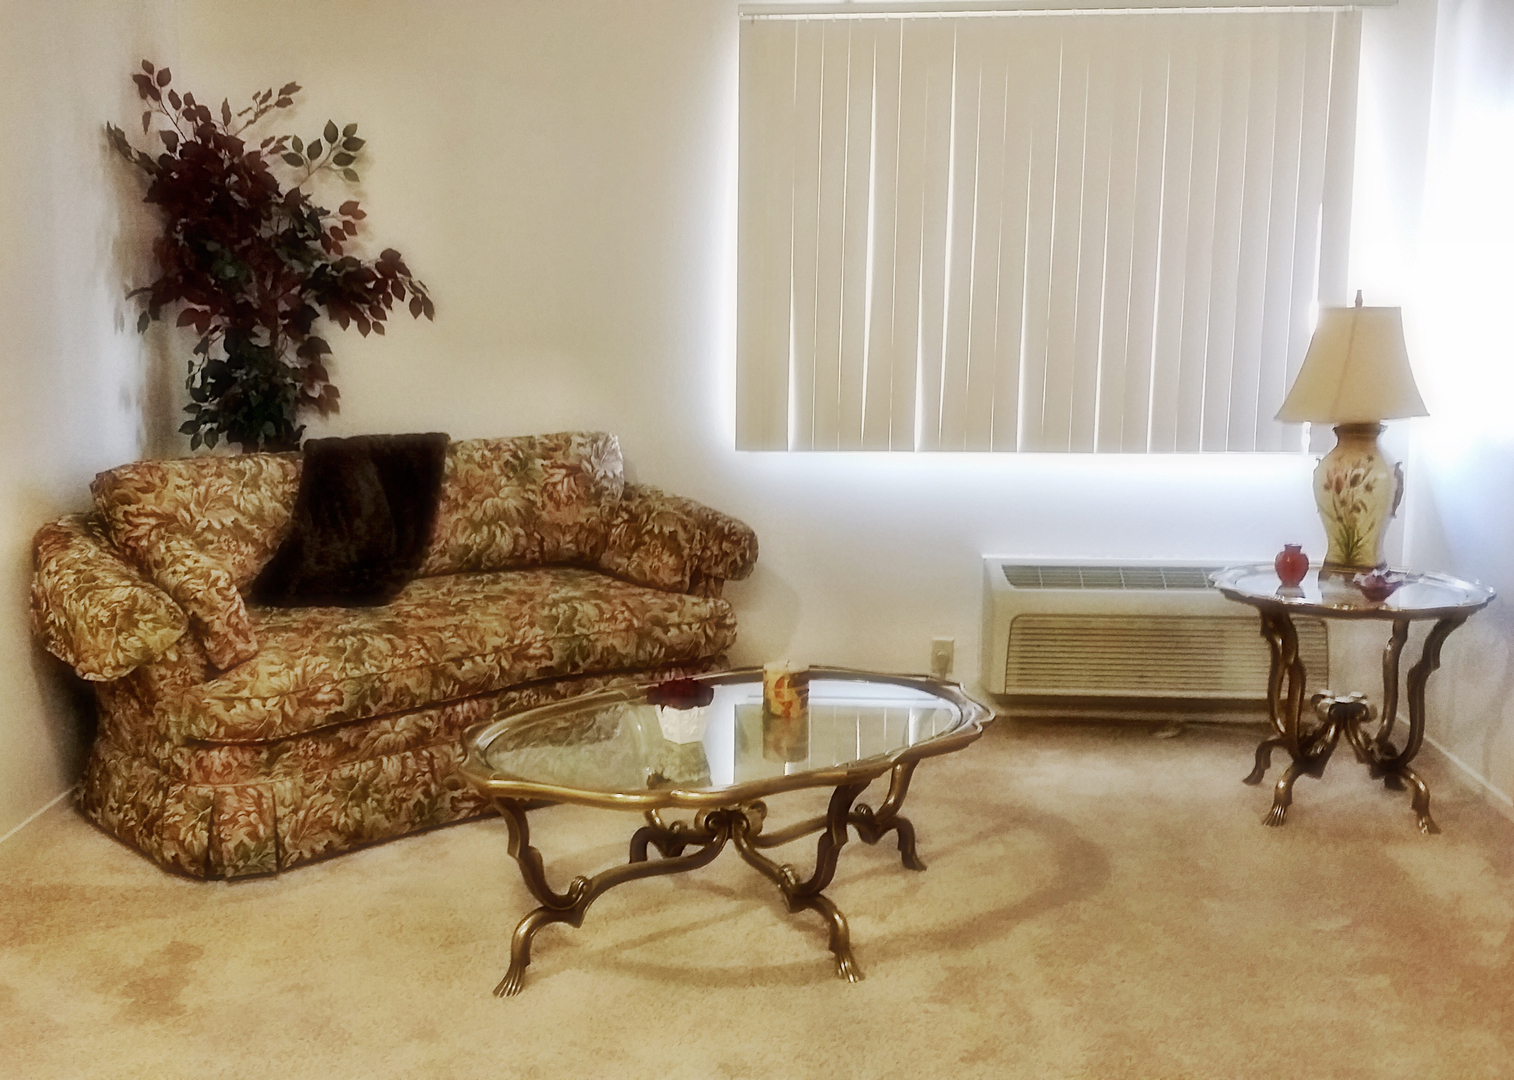 Well maintained apartments for comfortable living -  Park Kingsburg Senior Apartments Are Very Comfortable Quiet And Well Maintained Inside And Out I Ve Been Here 6 1 2 Years Happily